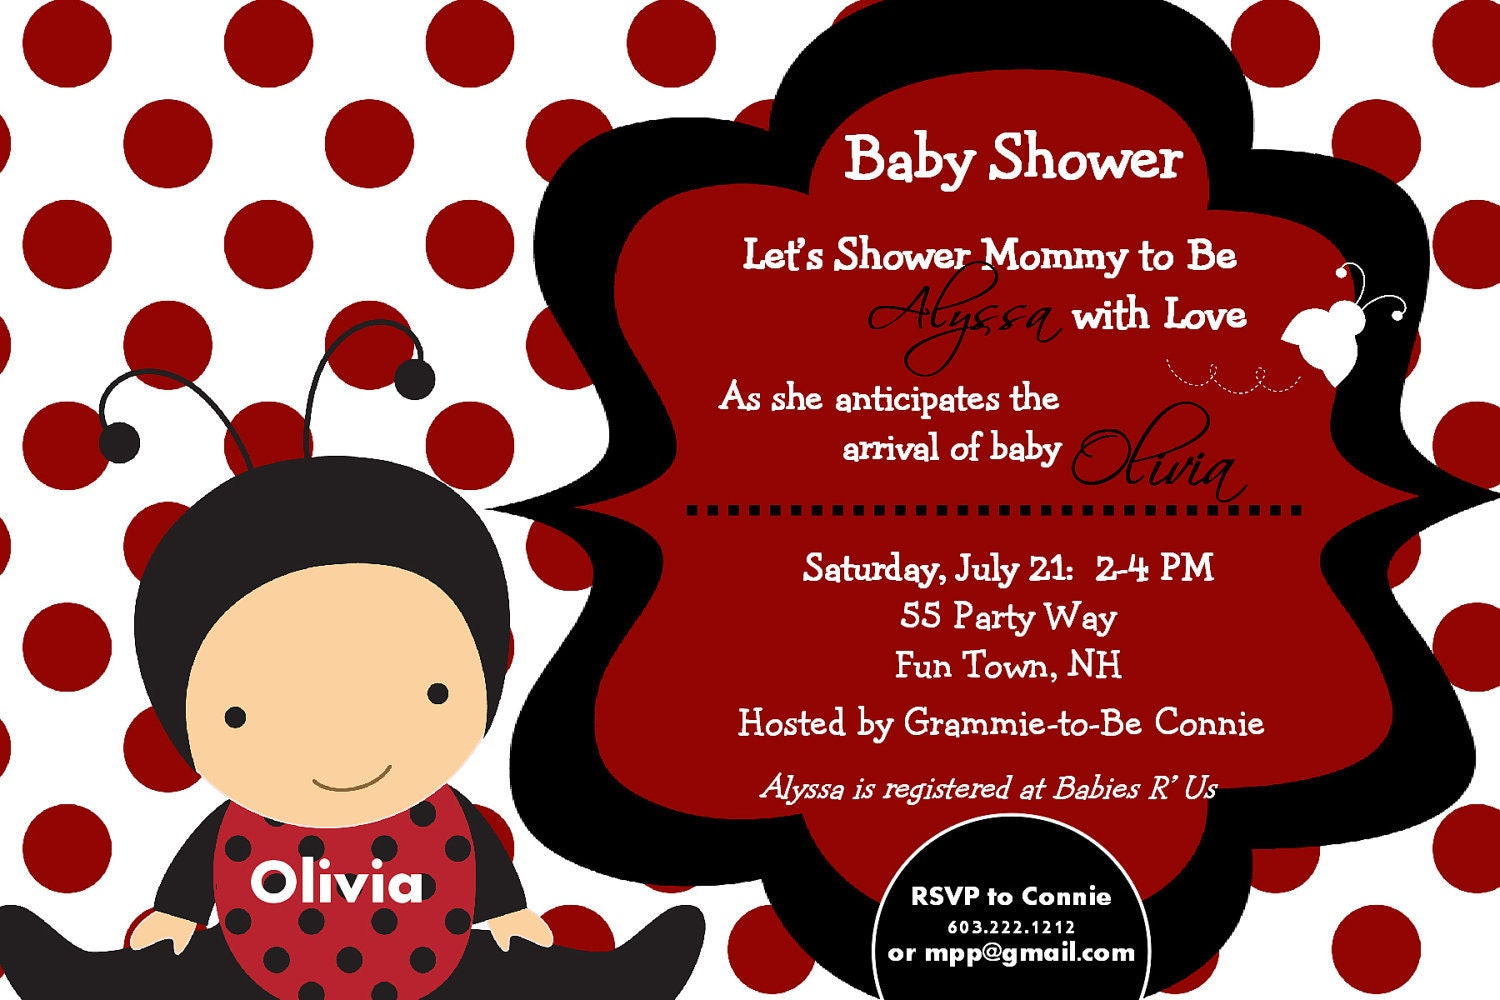 Baby Girl Shower Invitations Ladybug – diabetesmang.info